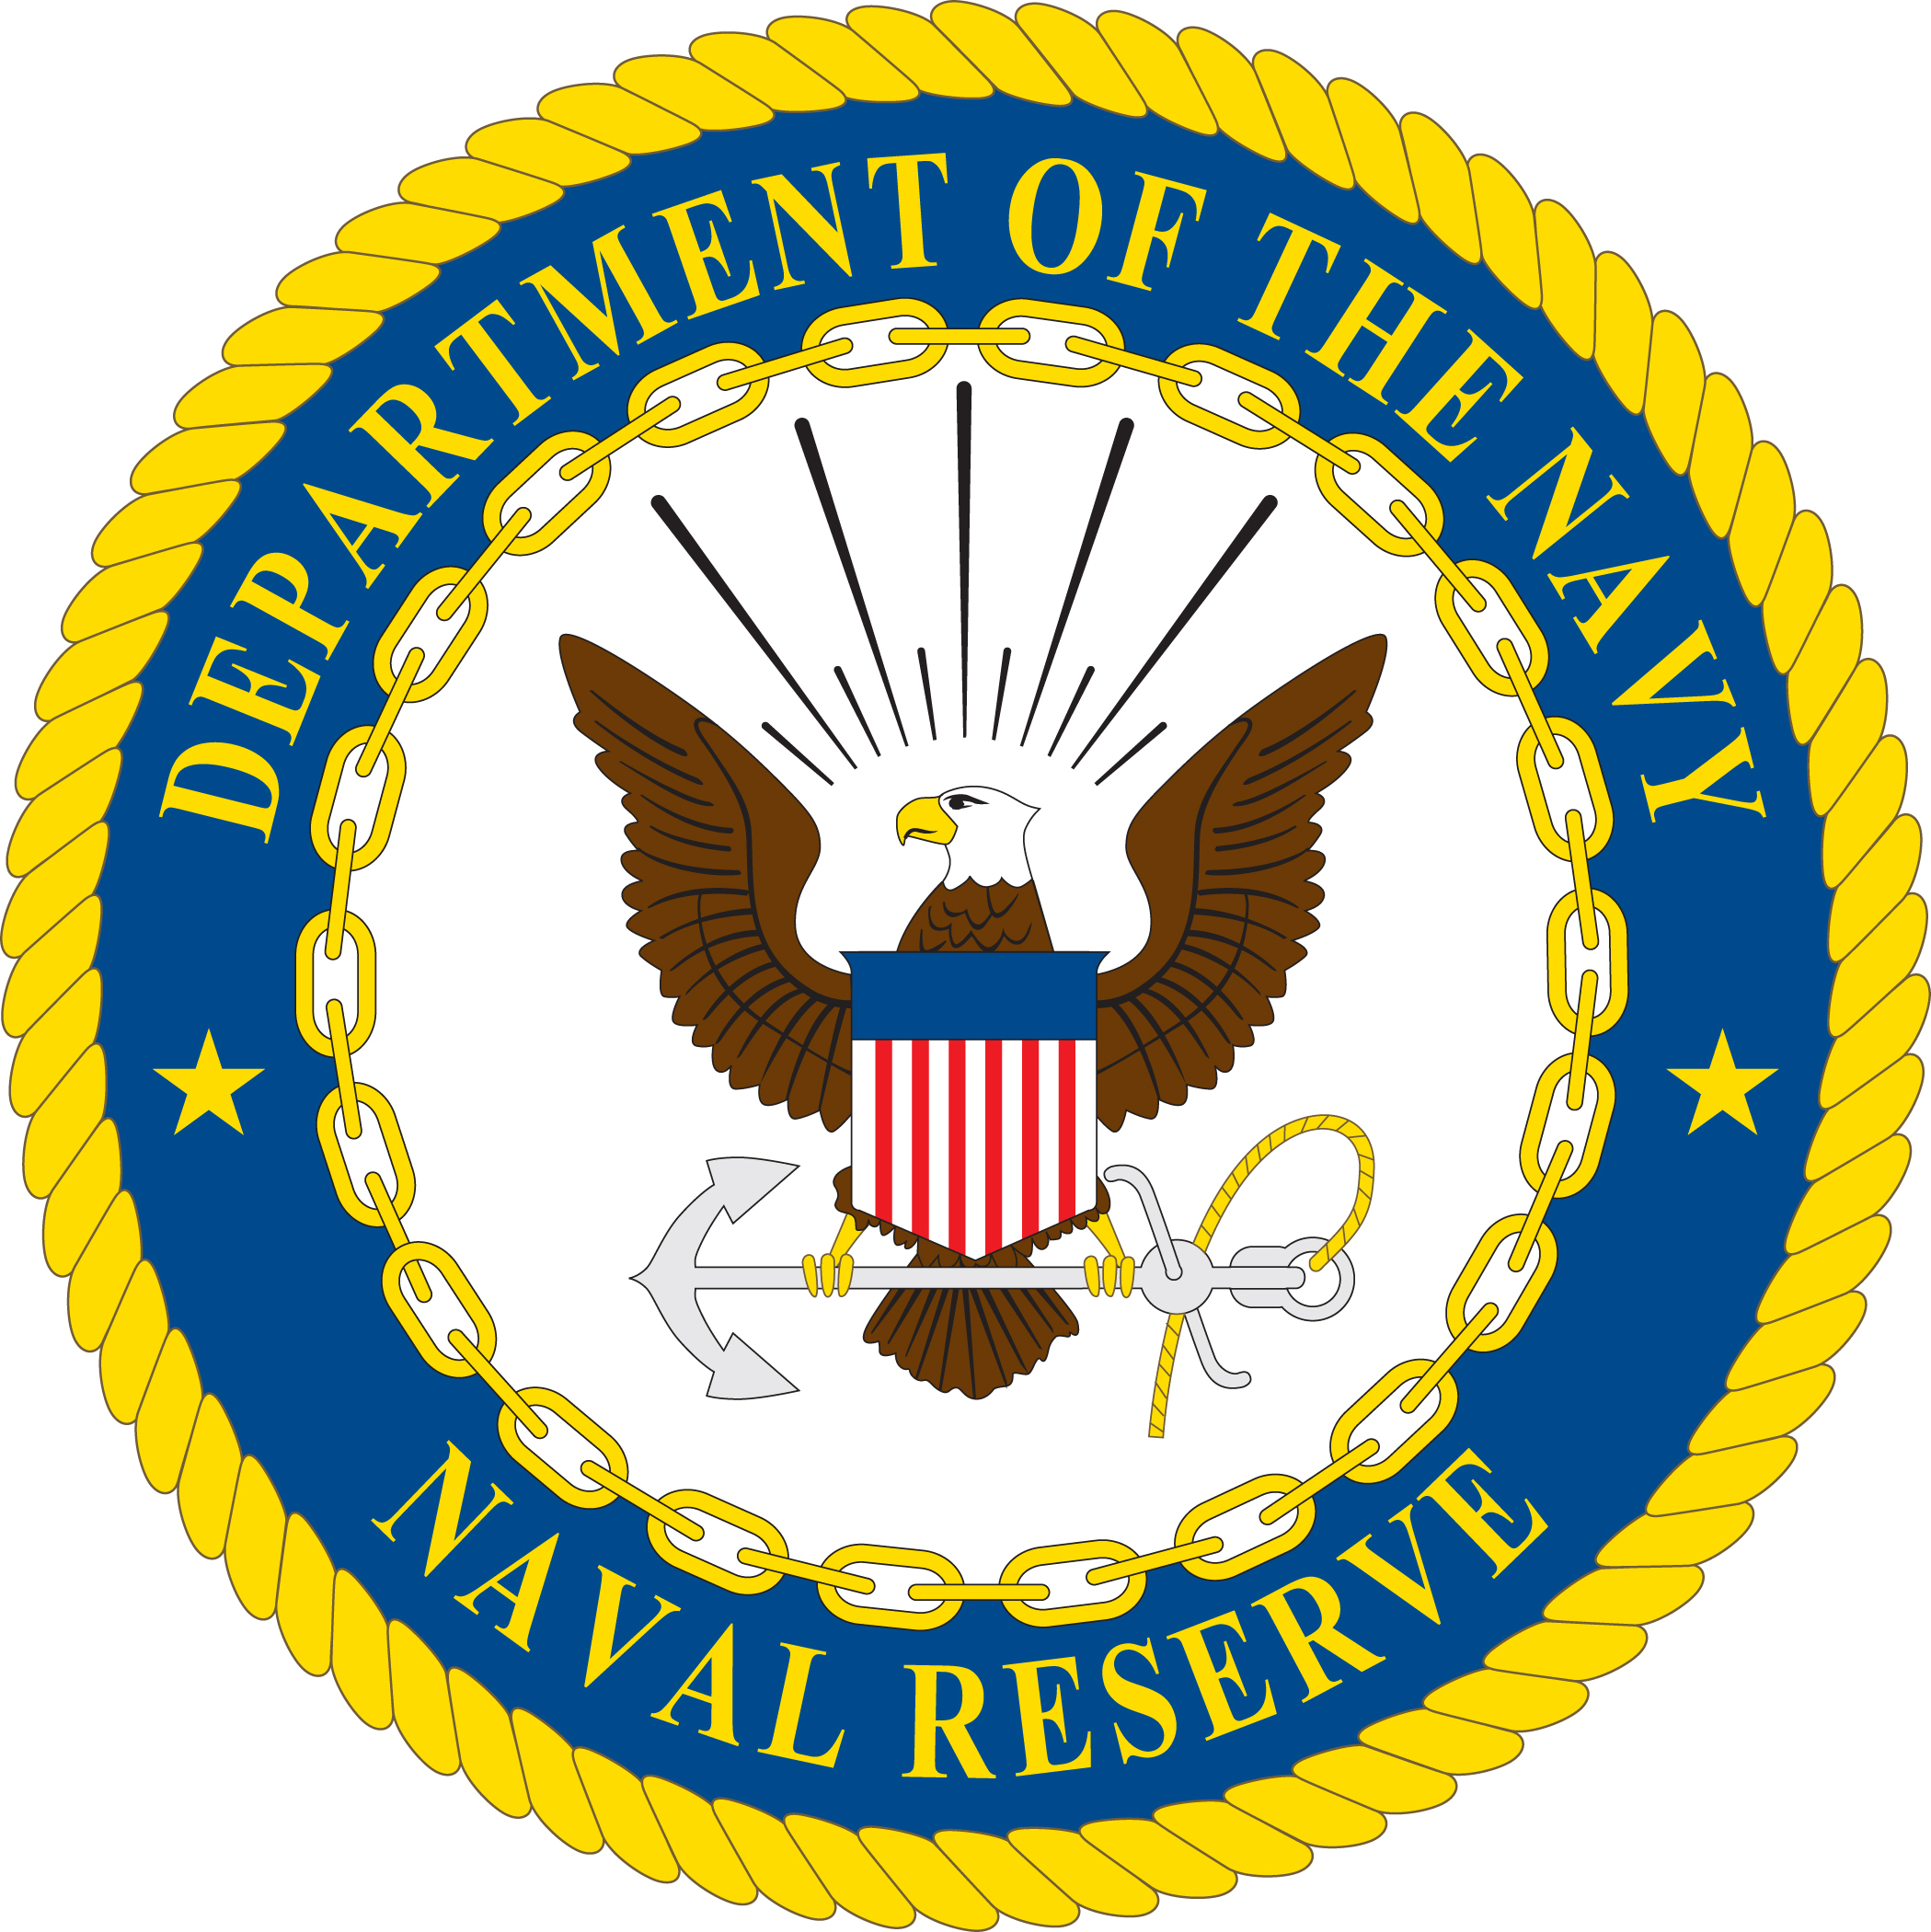 Joining the Navy Reserve is a chance to become part of something bigger than yourself, to discover camaraderie that's rarely experienced in everyday life, and to .